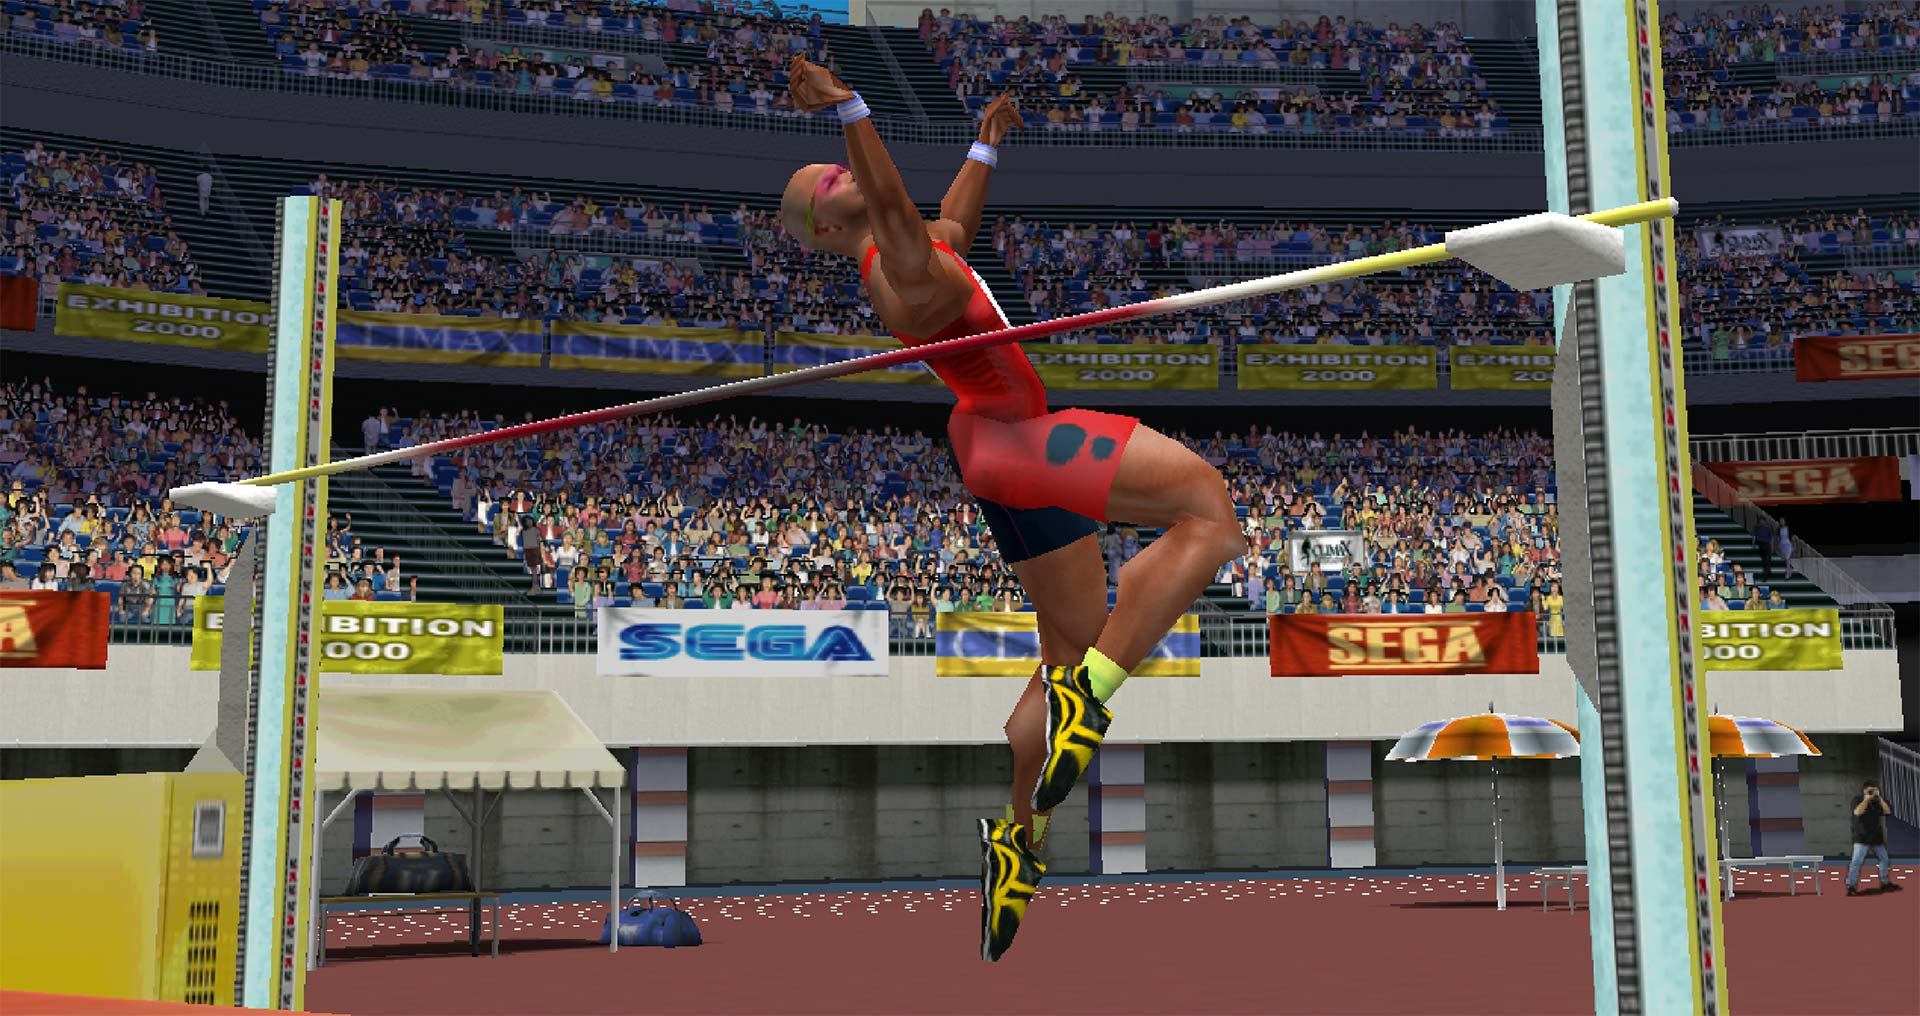 Virtua Athlete 2K high jump